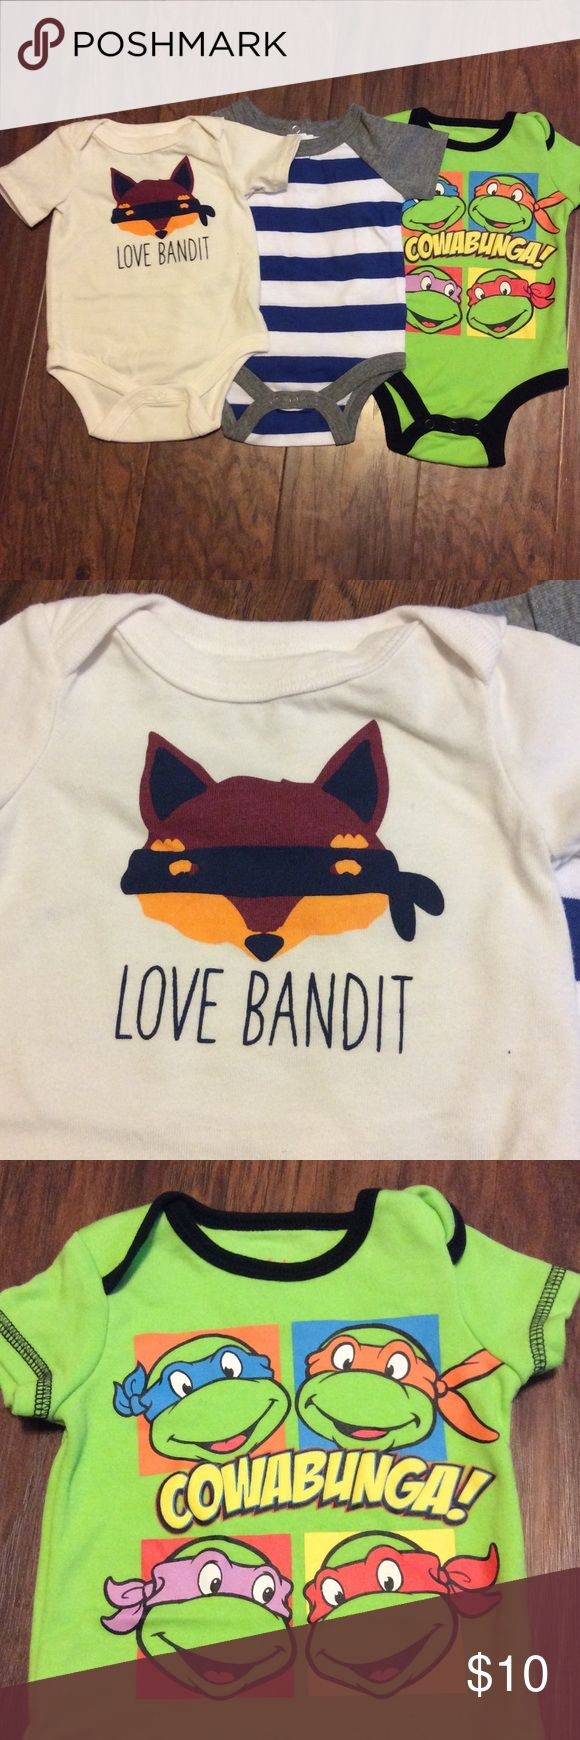 "3-pc Newborn Onesies--TMNT, Love Bandit, Etc. Three various onesies.  First is an off-white with raccoon print and ""love bandit"", by Circo.  Second is navy/white stripe with heather gray trim by Circo.  Third is Ninja Turtles with black trim on bright green by Nickelodeon.  All 100% cotton in excellent condition.  See my other listings to combine shipping and get a discount!  Thanks for looking! :) Various One Pieces Bodysuits"